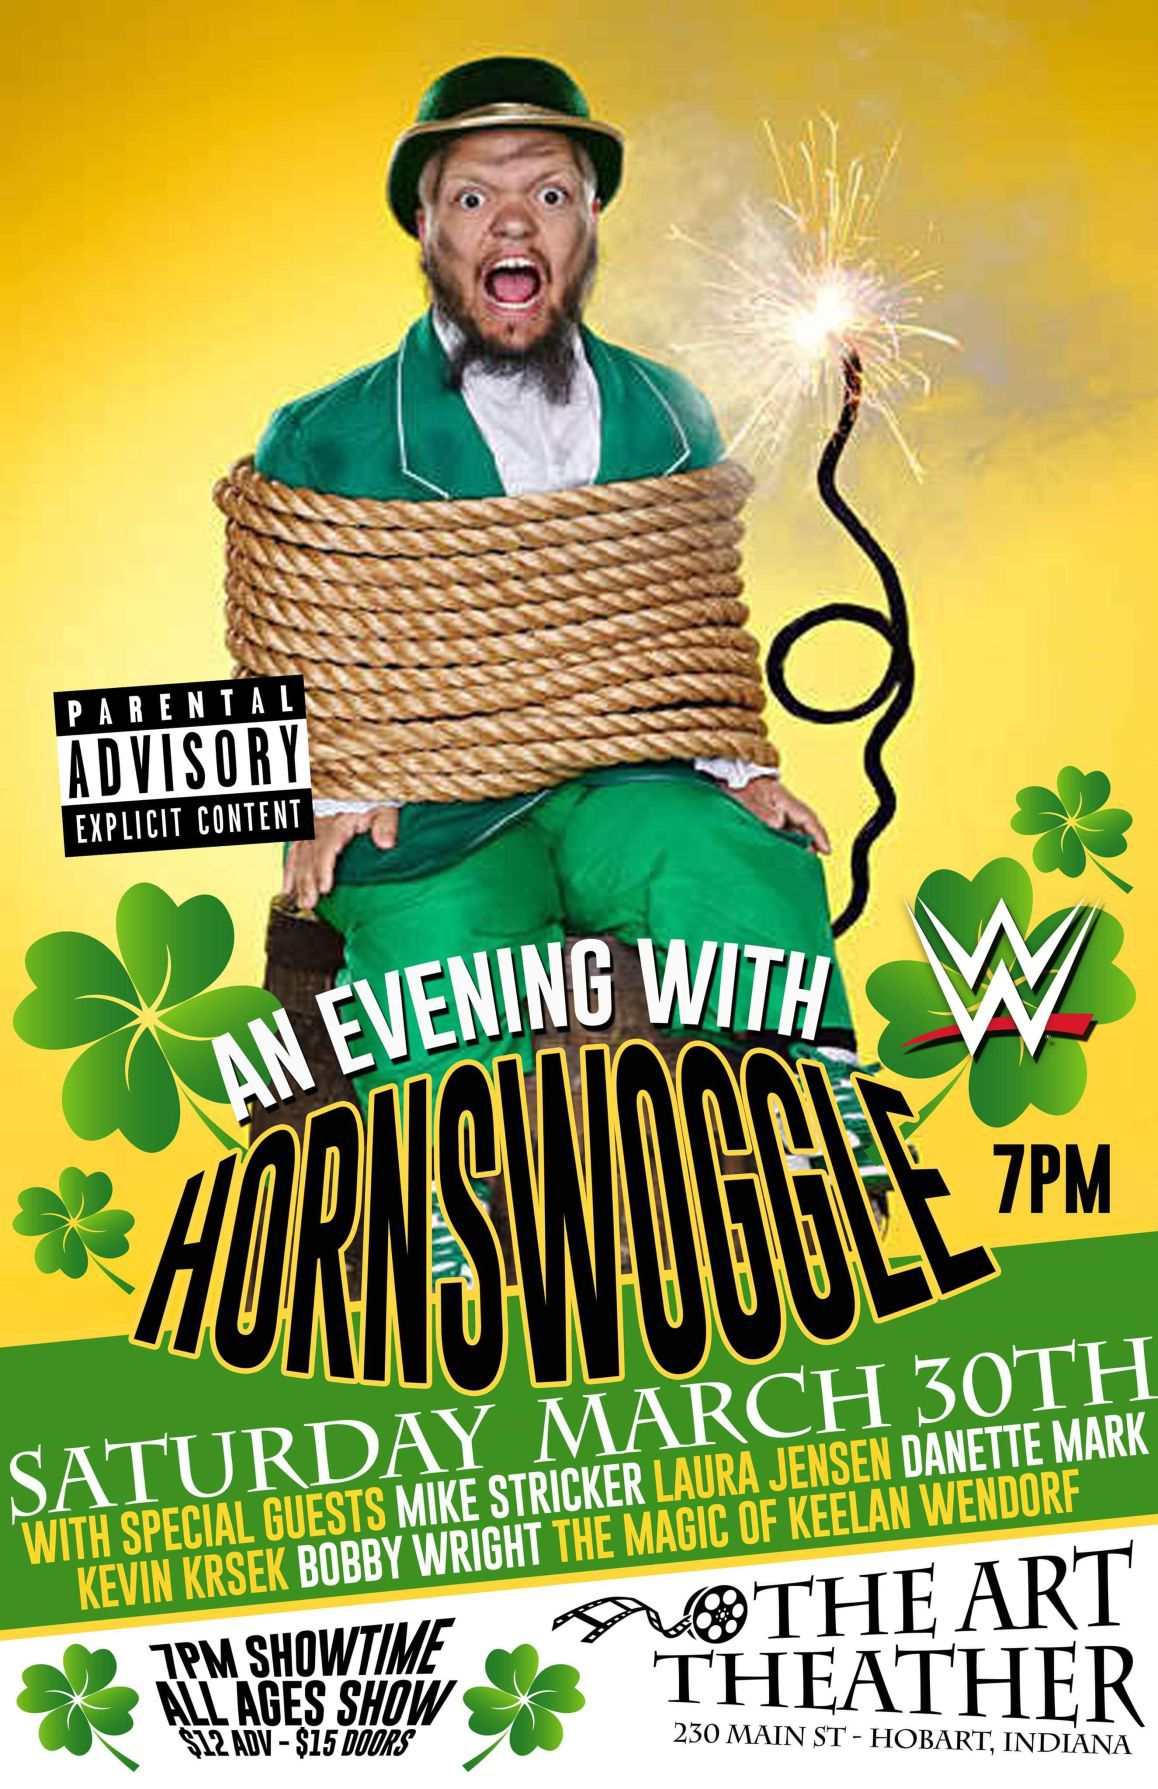 WWE wrestler Hornswoggle to headline stand-up comedy night at Hobart Art Theatre